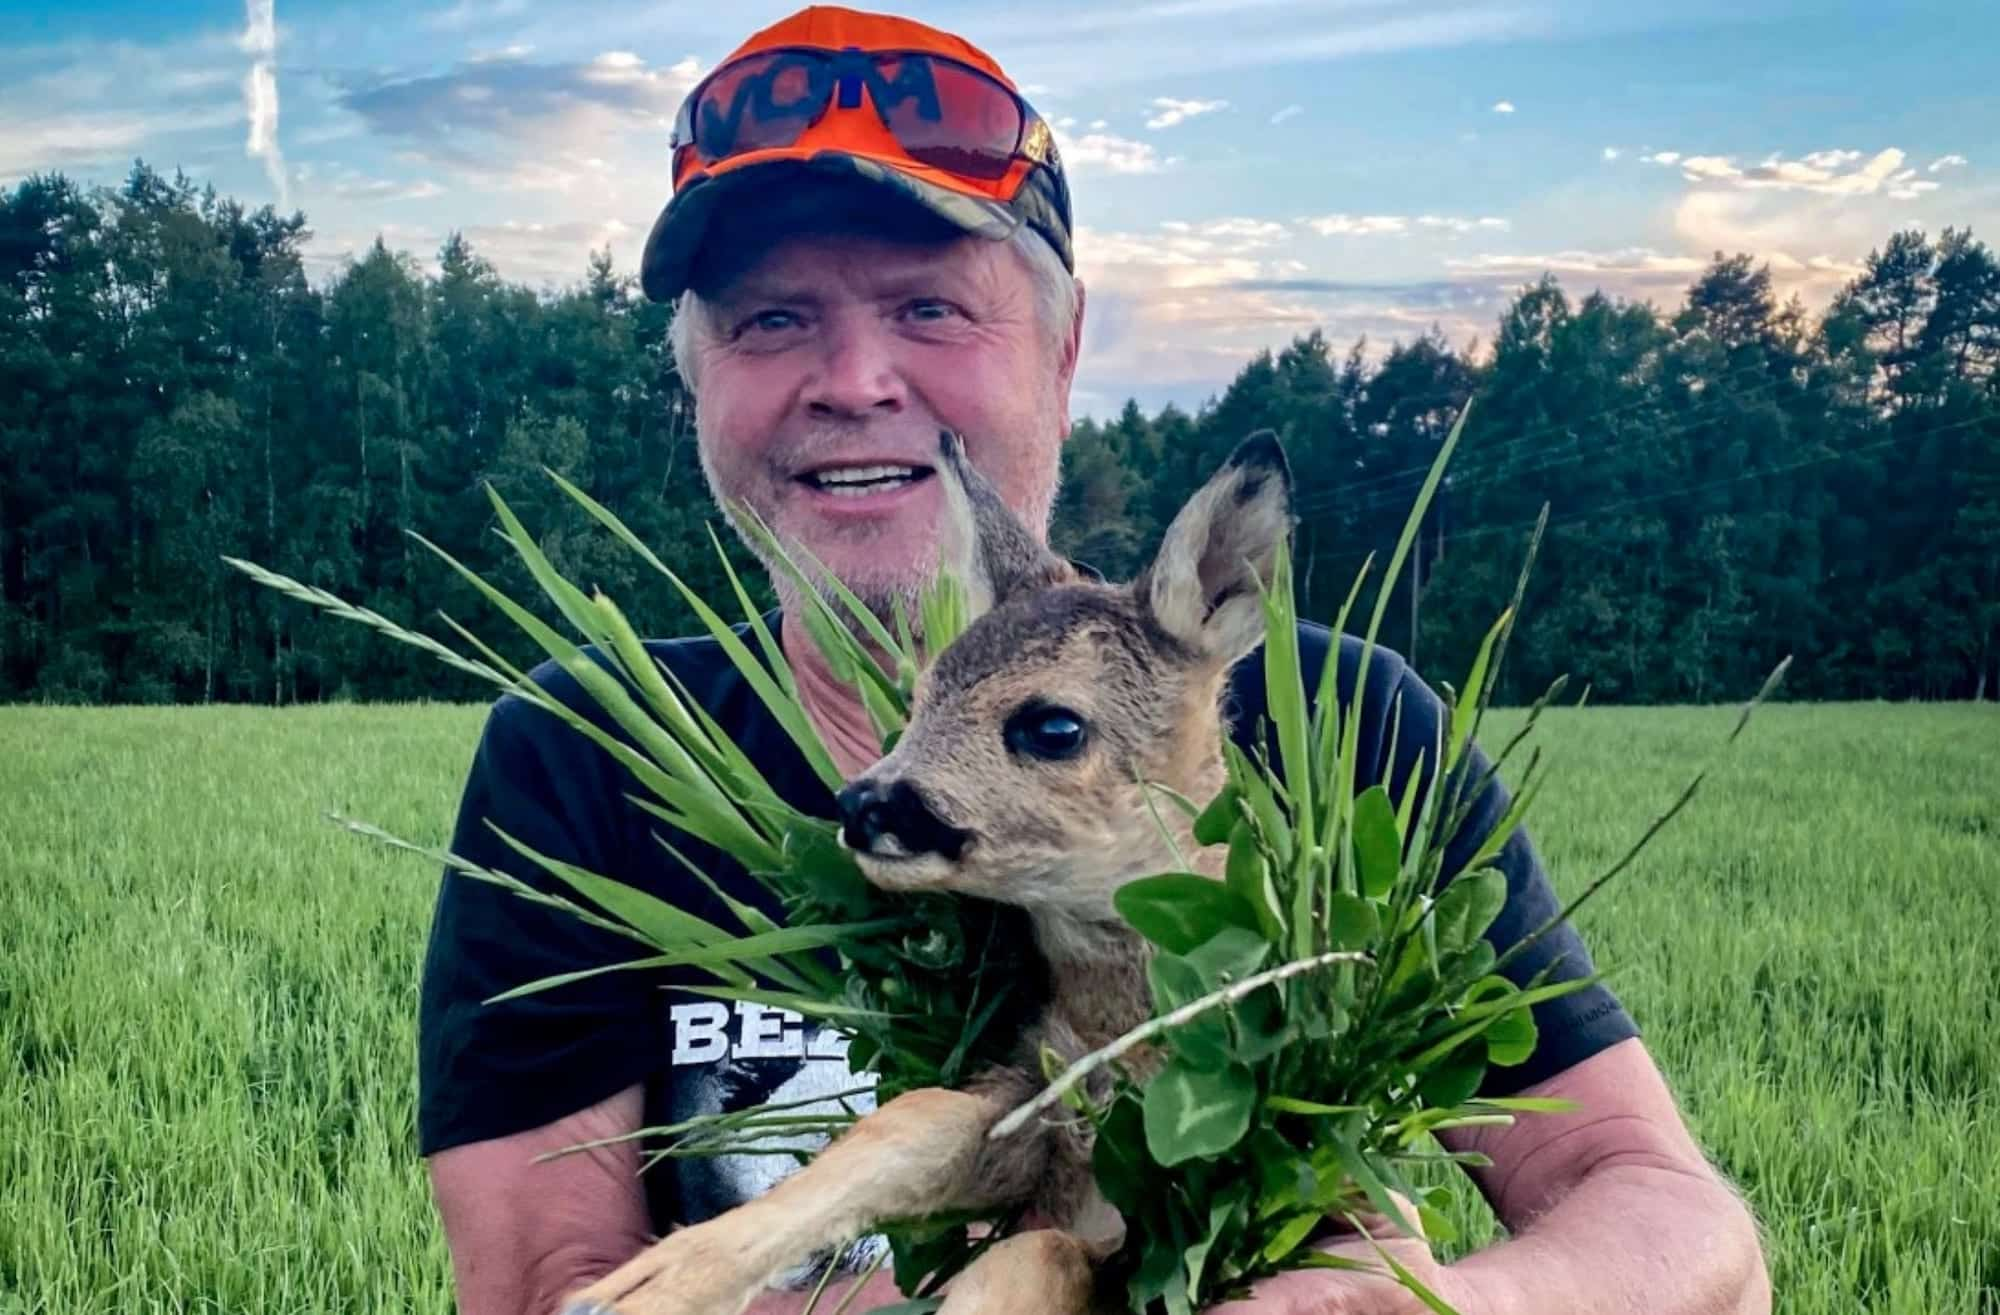 After success in Switzerland, we now see drones being used to save baby deer in Norway as well. Drones with thermal cameras are used to scan the fields for any baby deer before the mowers come.